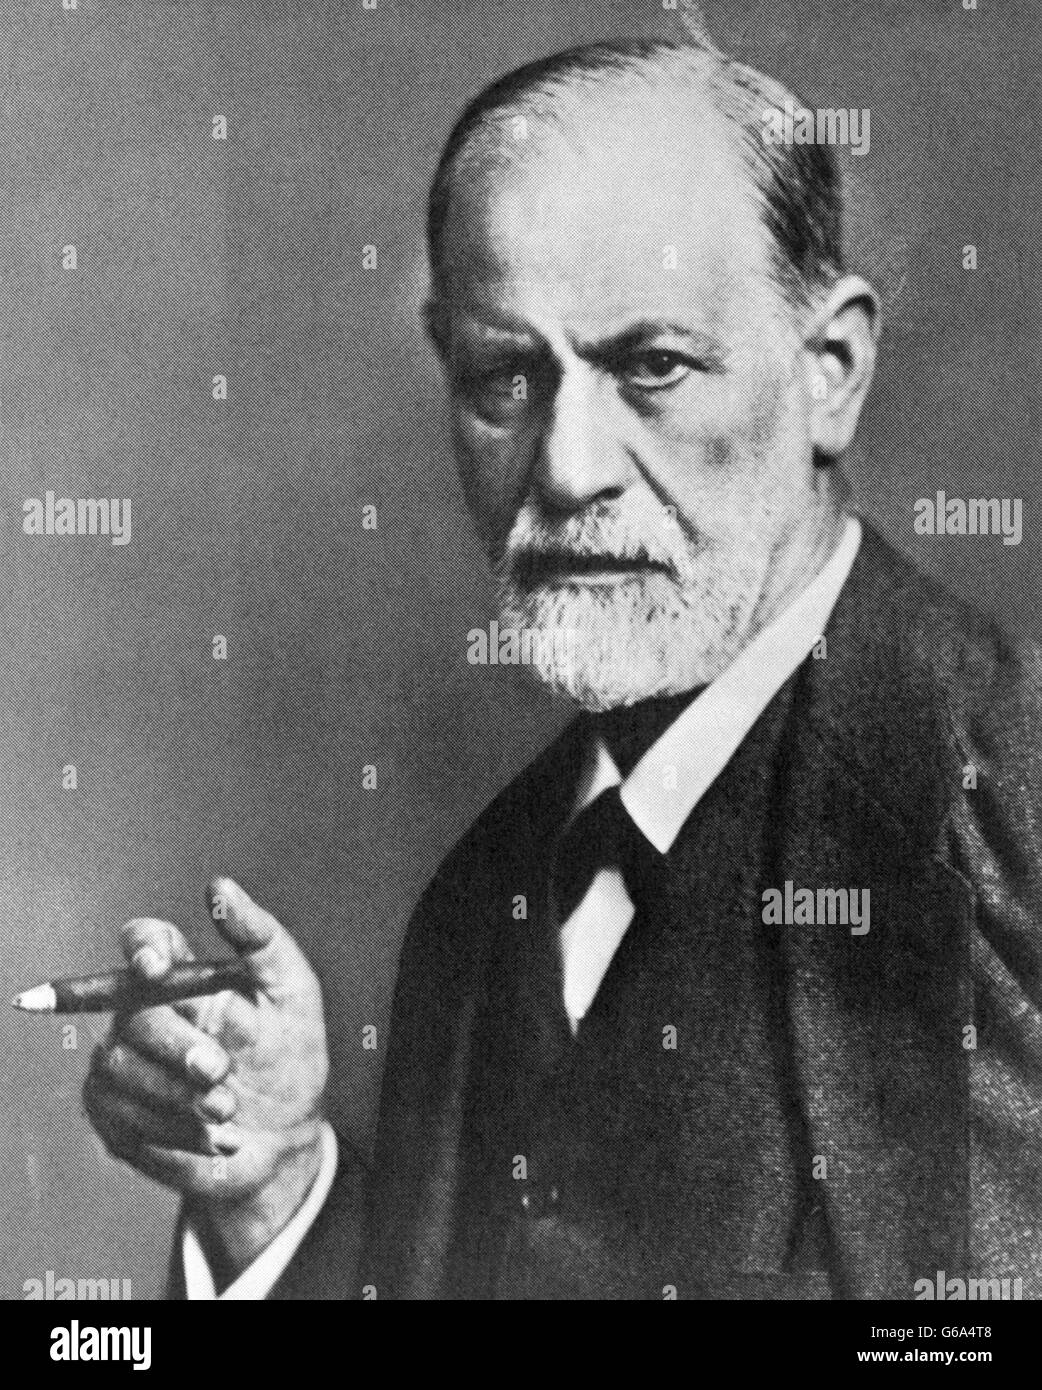 1920s Portrait of Sigmund Freud looking serious smoking a cigar by MAX HALBERSTADT - Stock Image